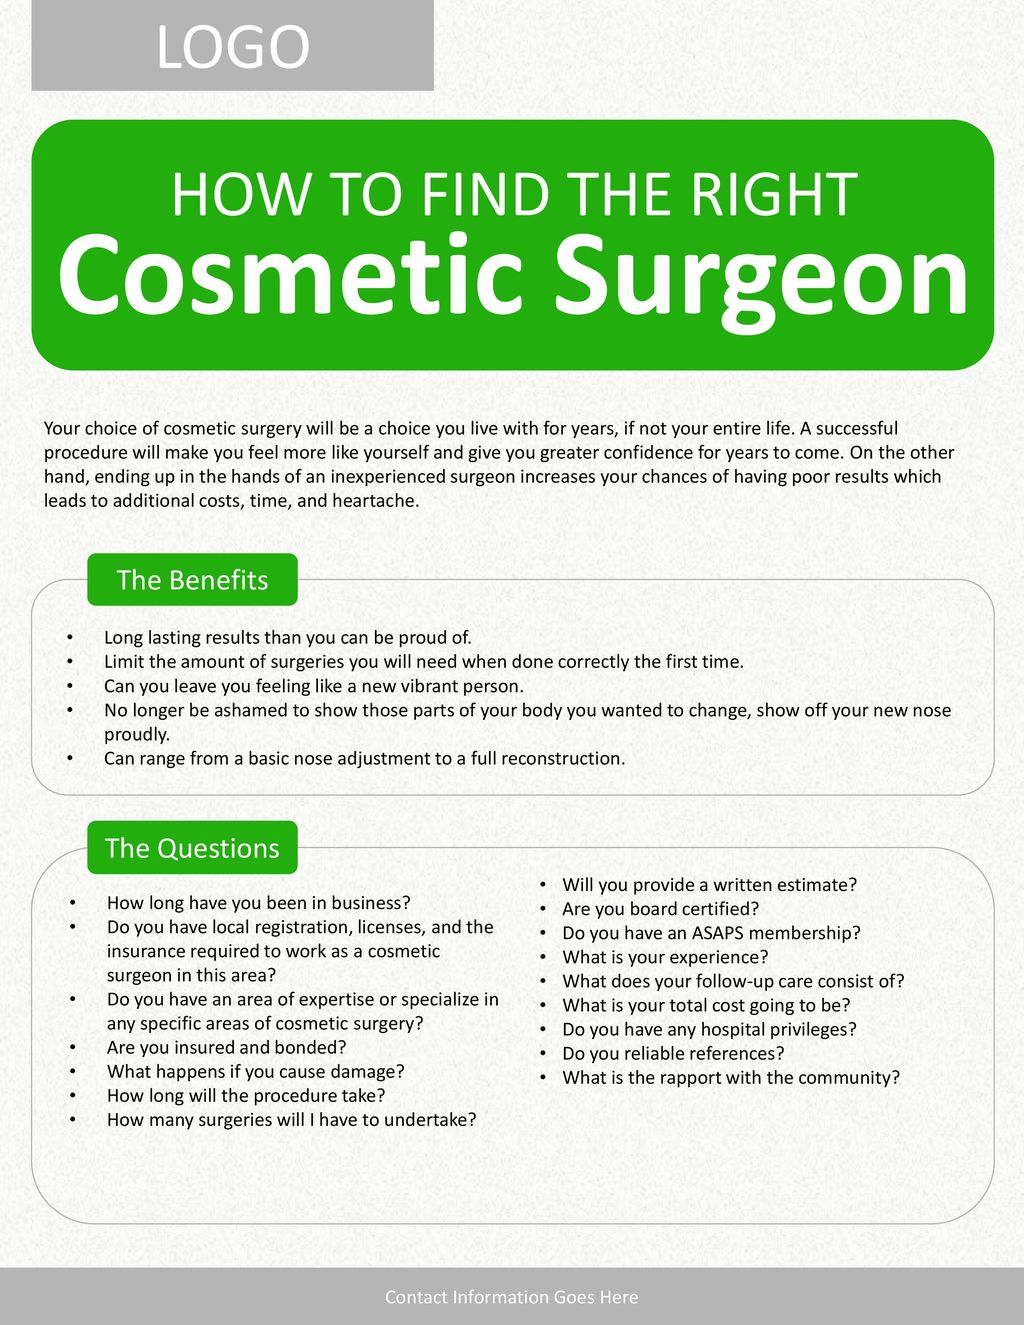 Cosmetic Surgeon LOGO HOW TO FIND THE RIGHT The Benefits The